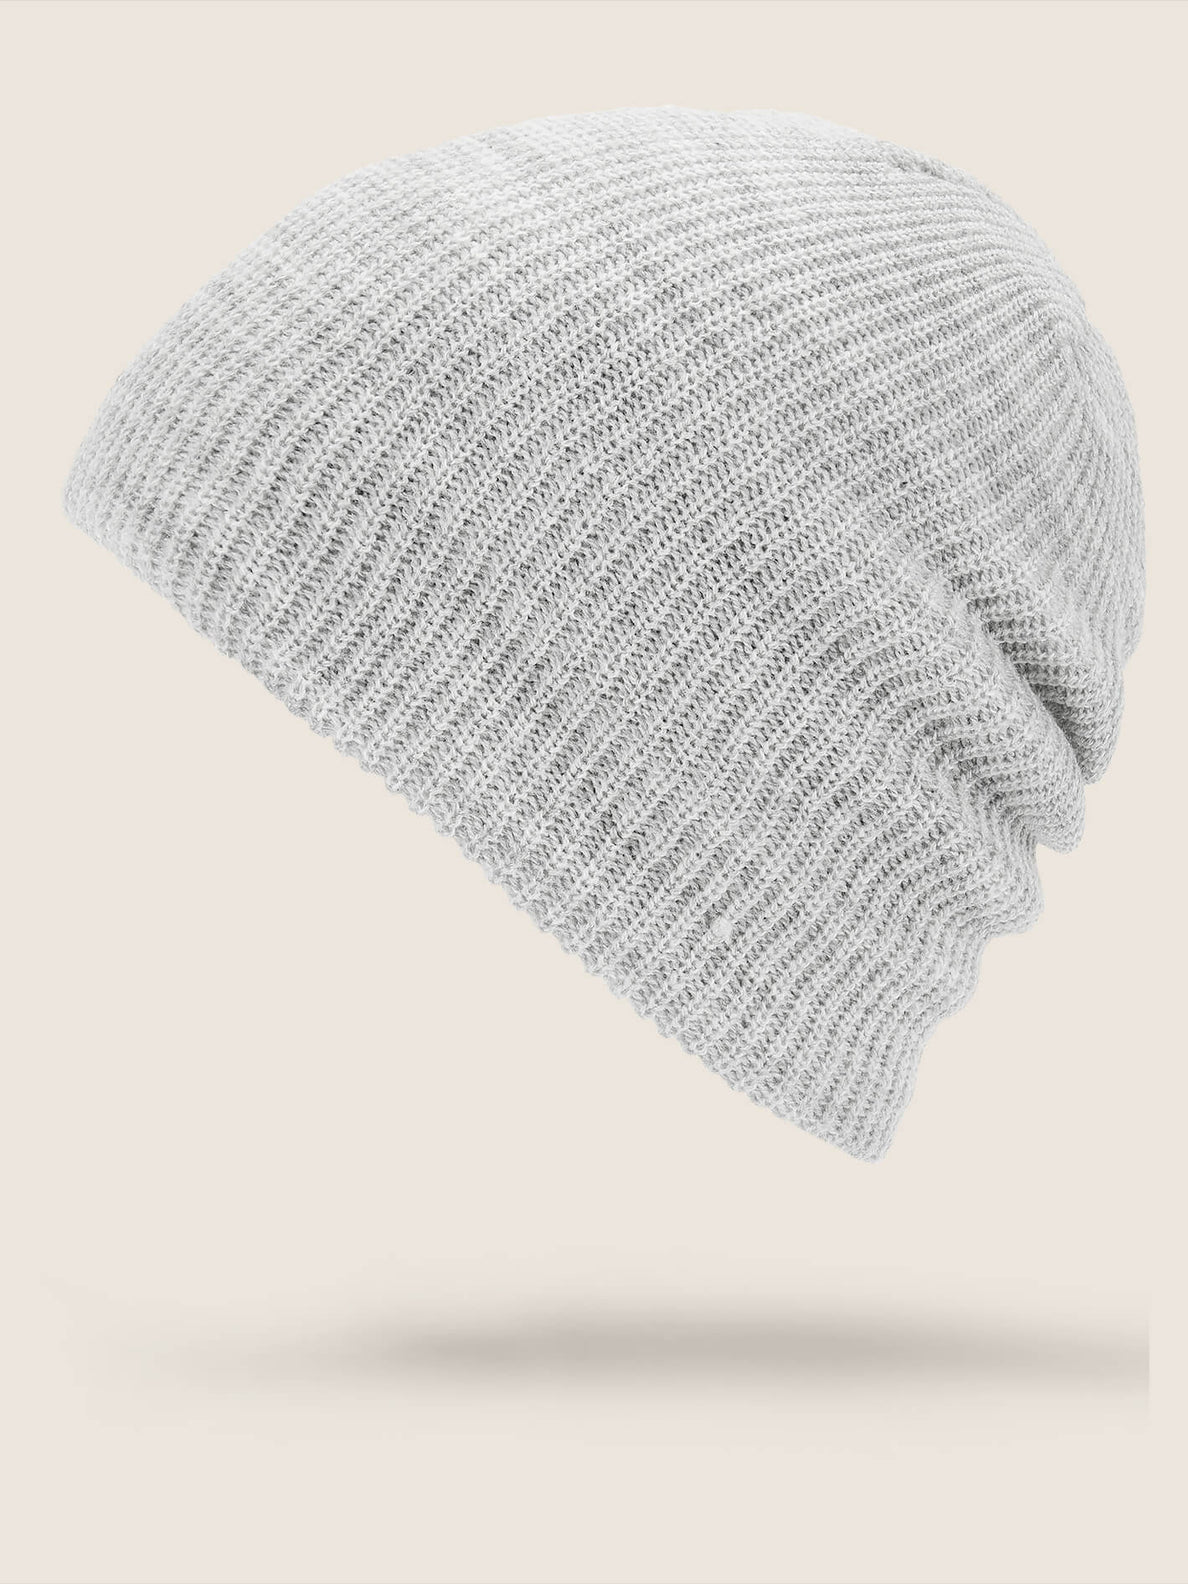 Vs Beanie In Heather Grey, Back View